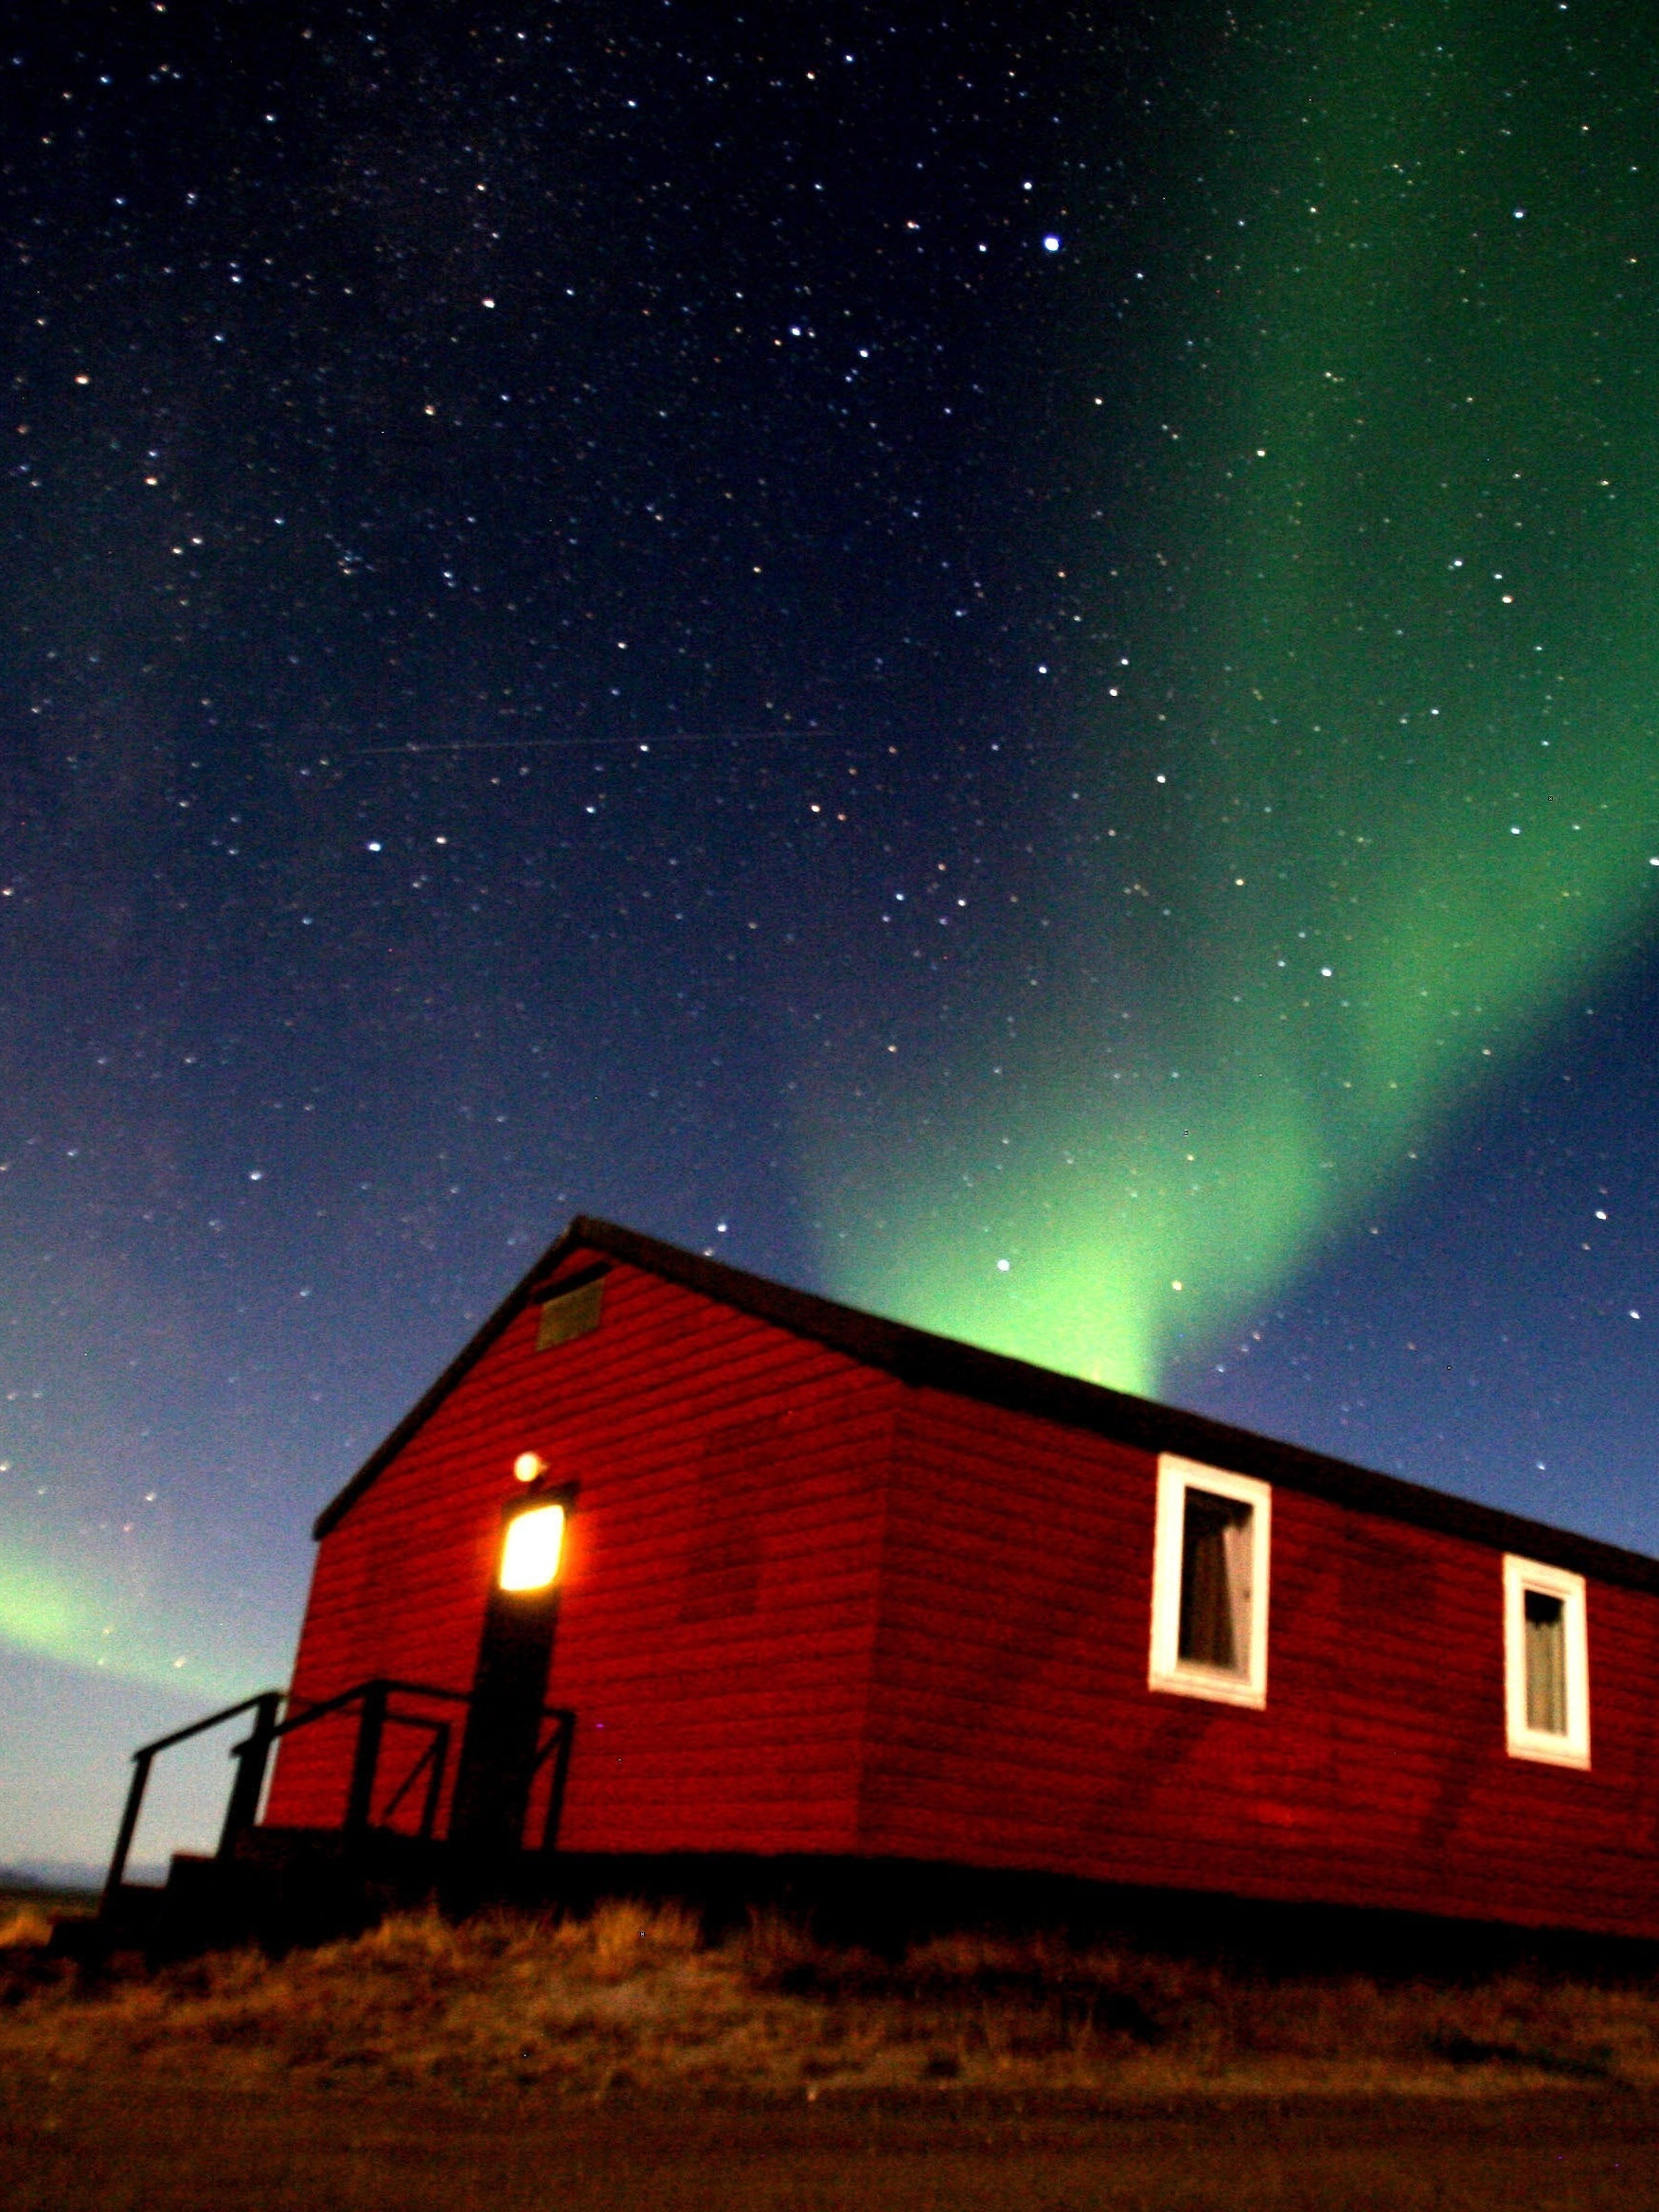 KANGERLUSSUAQ, GREENLAND - SEPTEMBER 03: (ISRAEL OUT) The Aurora Borealis glows in the sky, September 03, 2007, in the Greenland town of Kangerlussuaq. The Northern Lights most often occurs from September to October and from March to April and are a popular tourist attraction.  (Photo by Uriel Sinai/Getty Images)